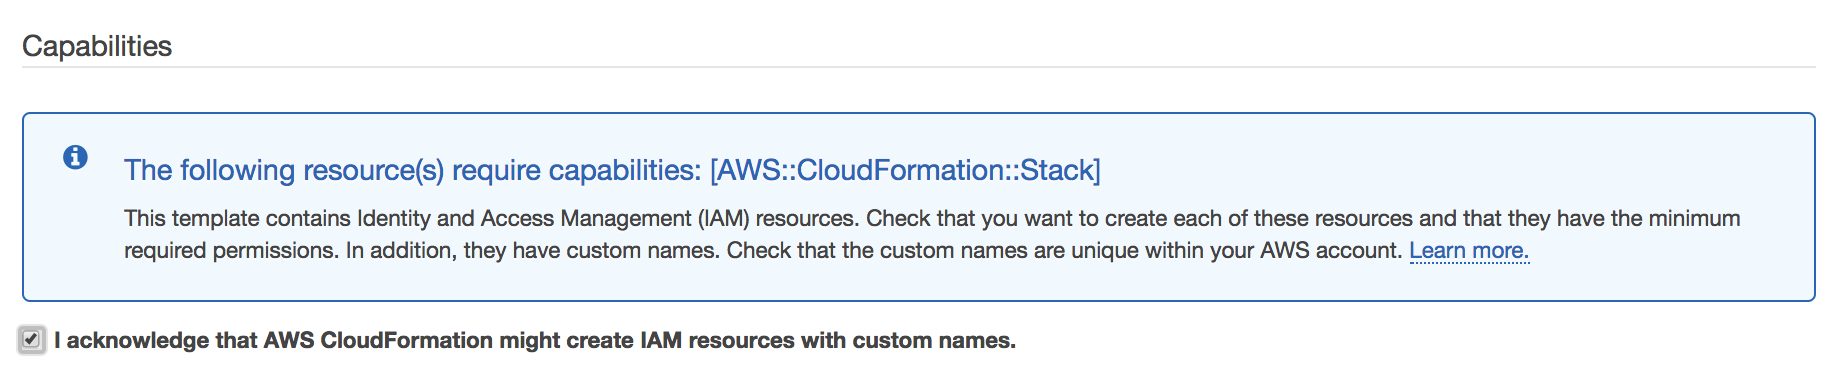 Stack getting rolled back automatically · Issue #43 · aws-samples